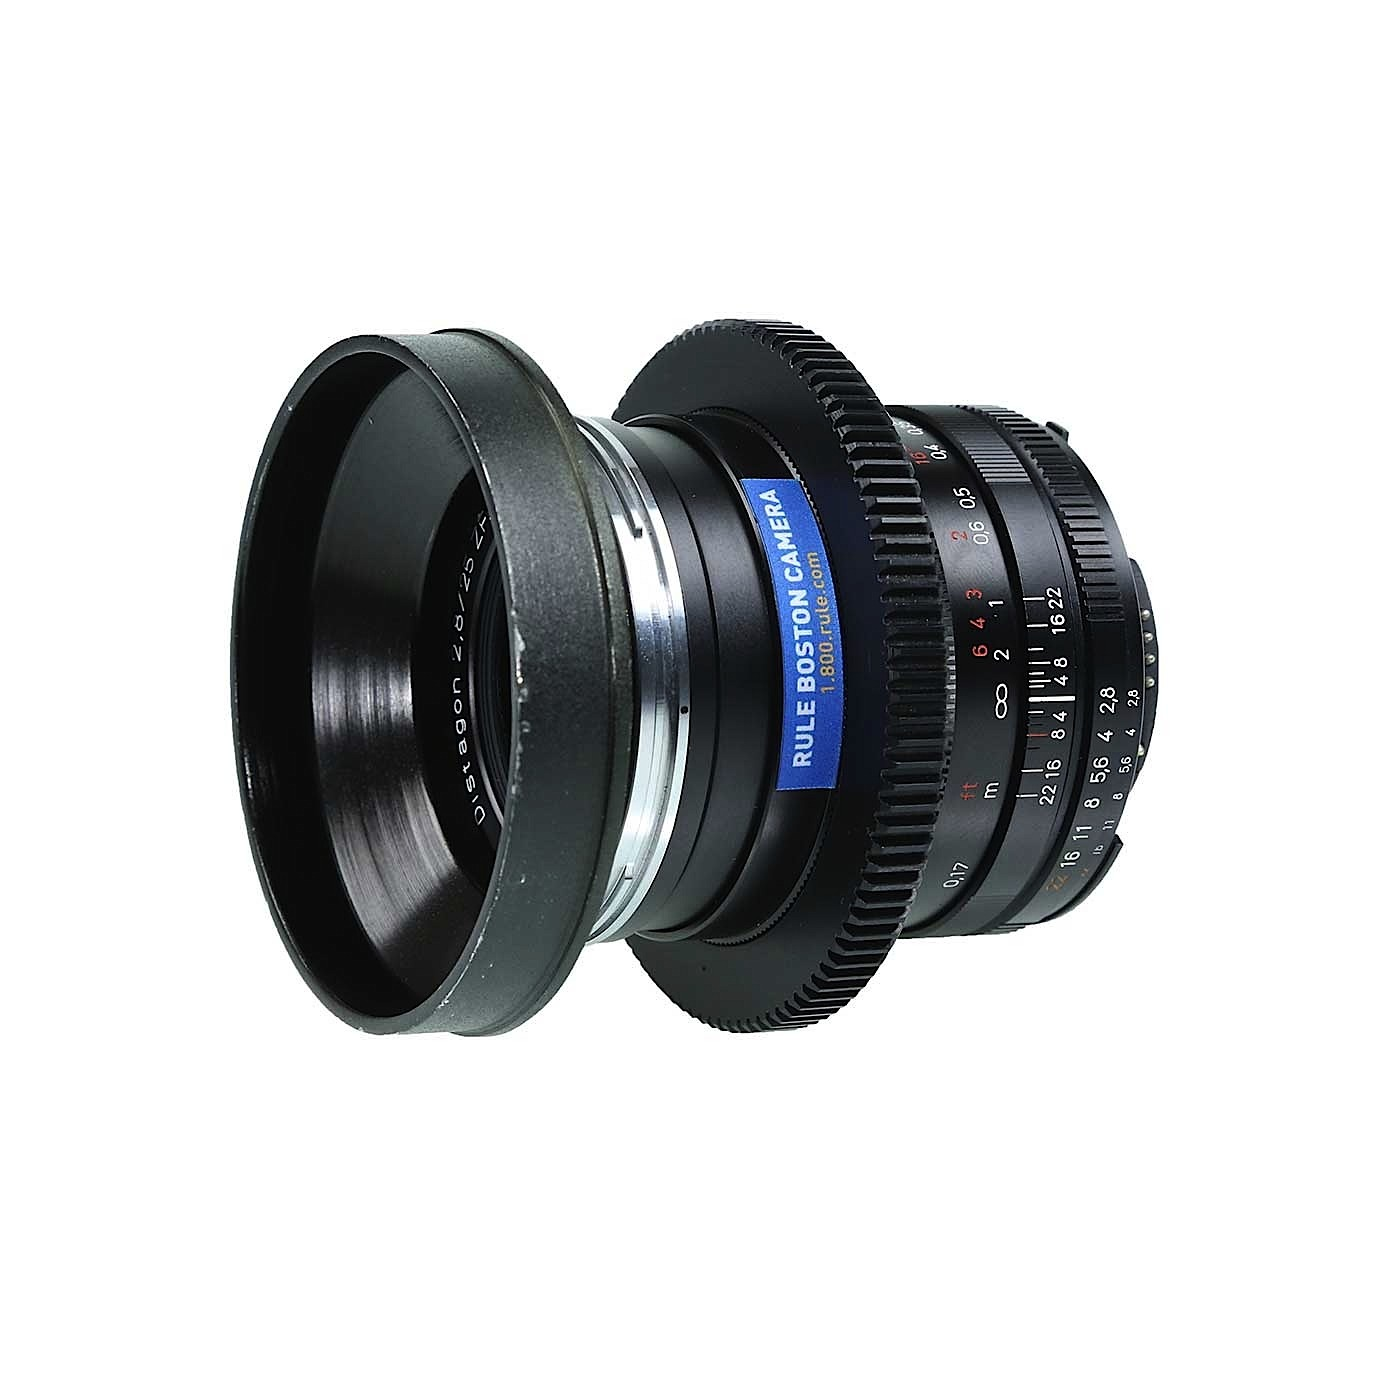 Zeiss ZF 25mm Prime Lens